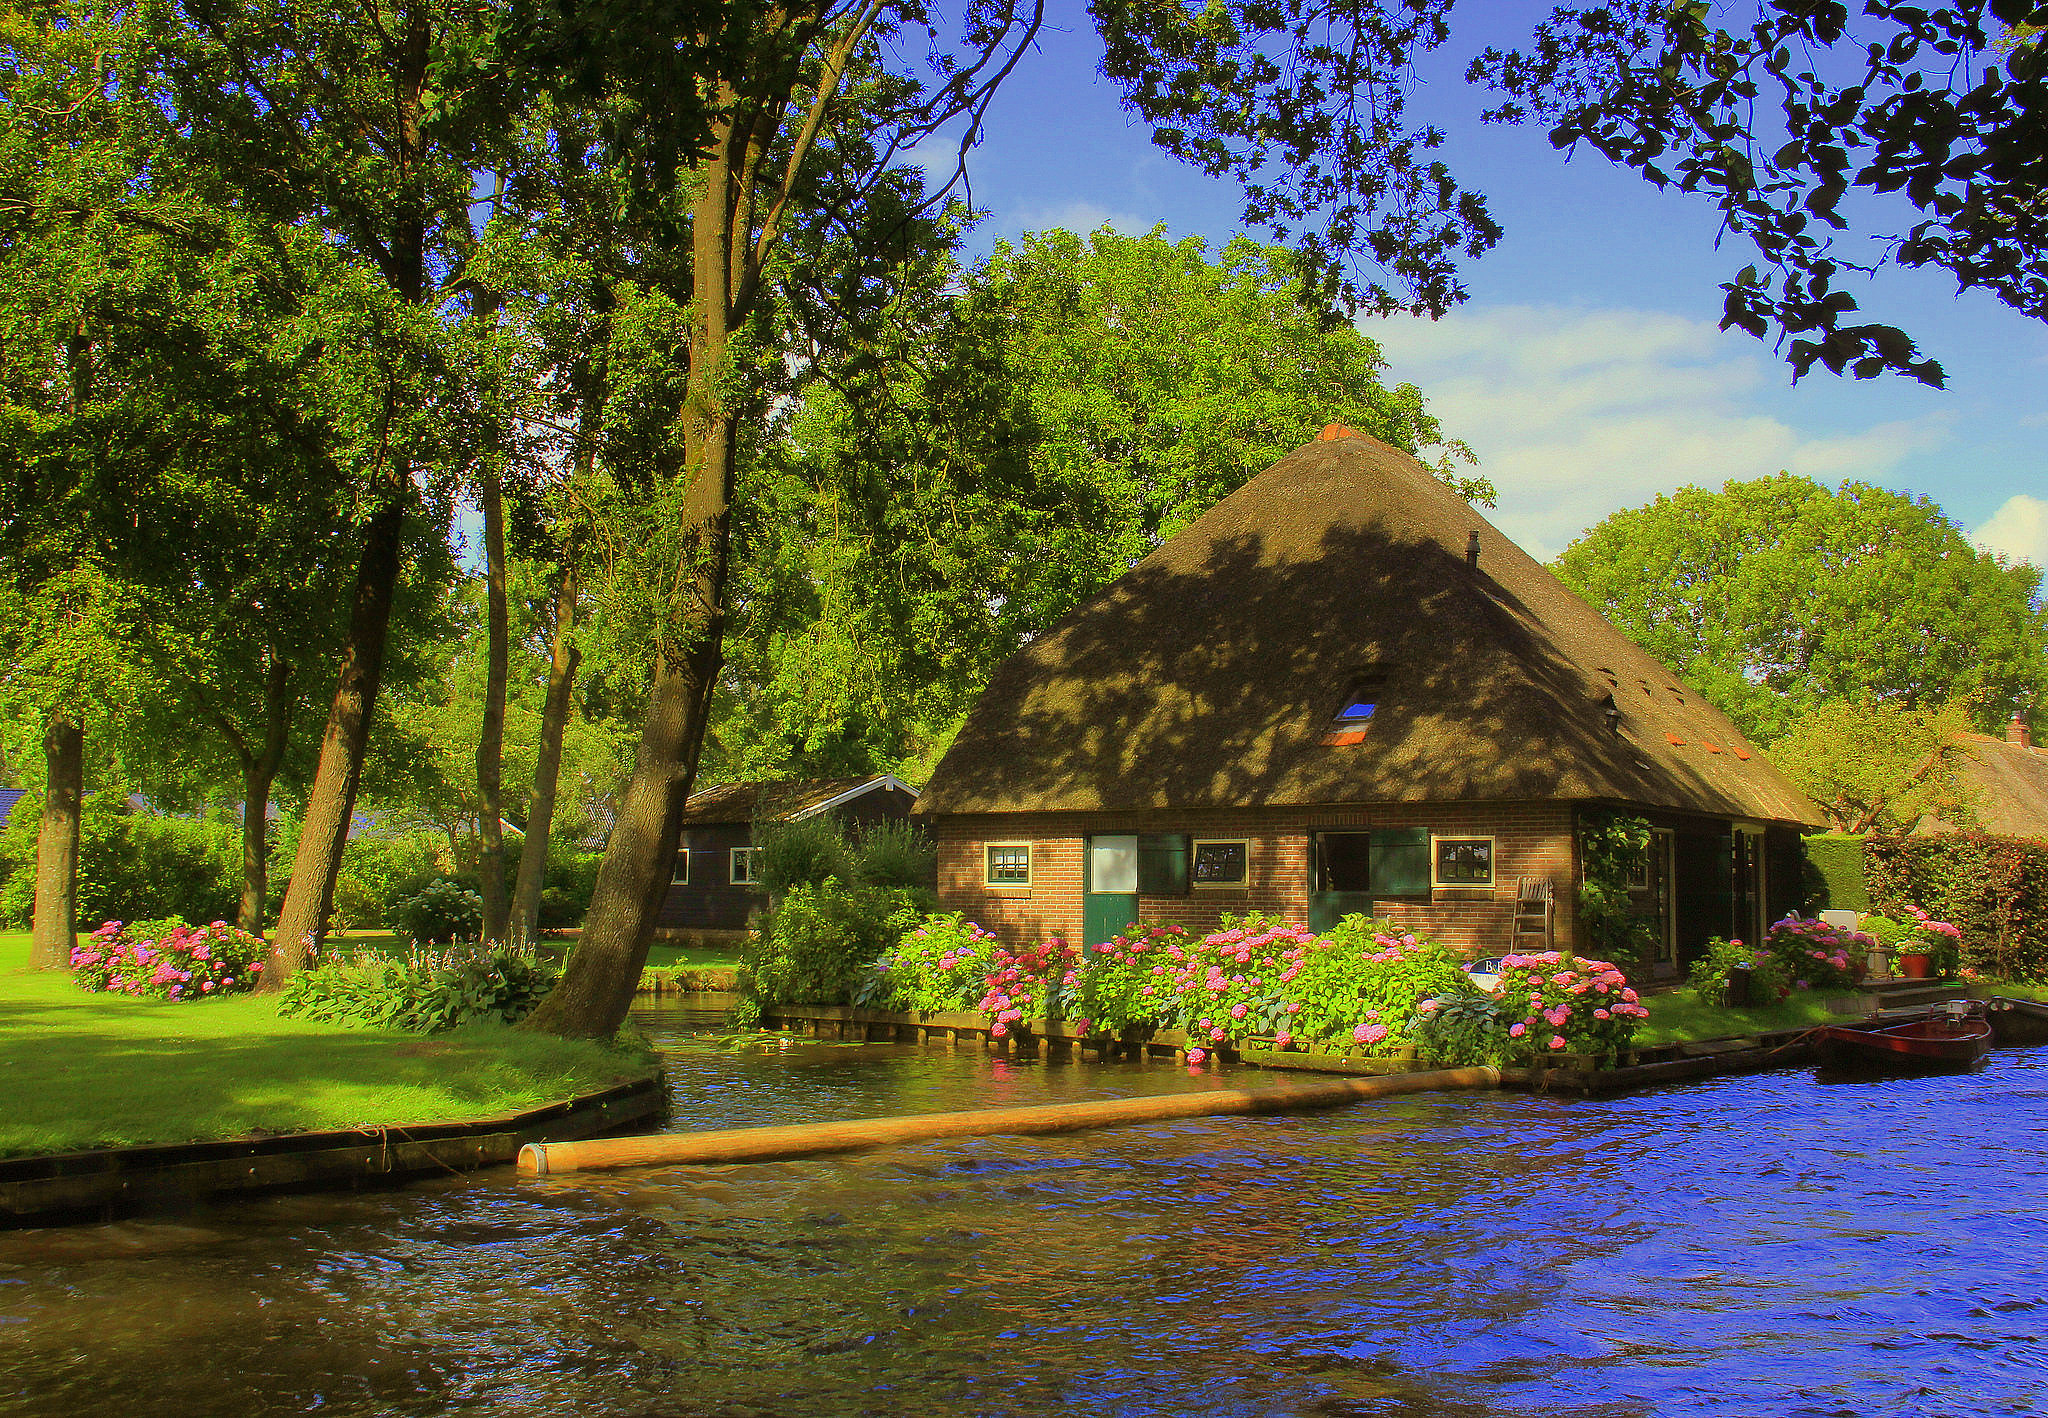 Giethoorn is a pretty Dutch village in Netherlands